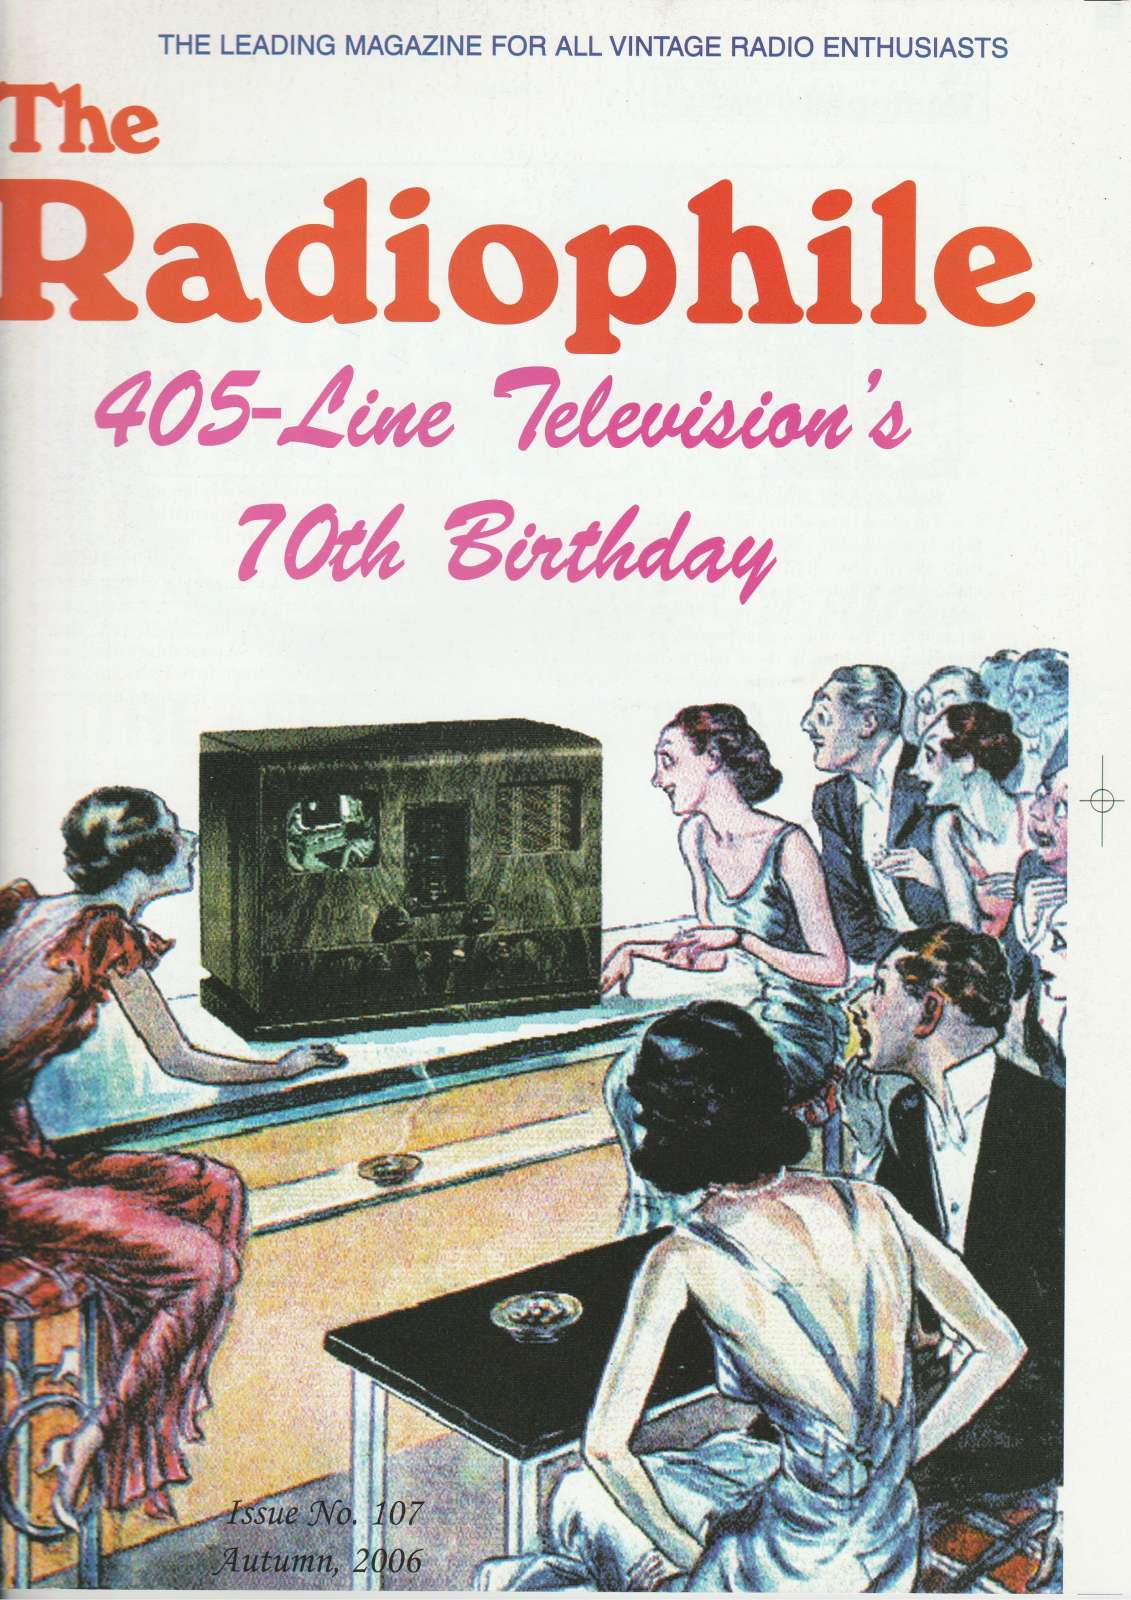 Radiophile Issue 107